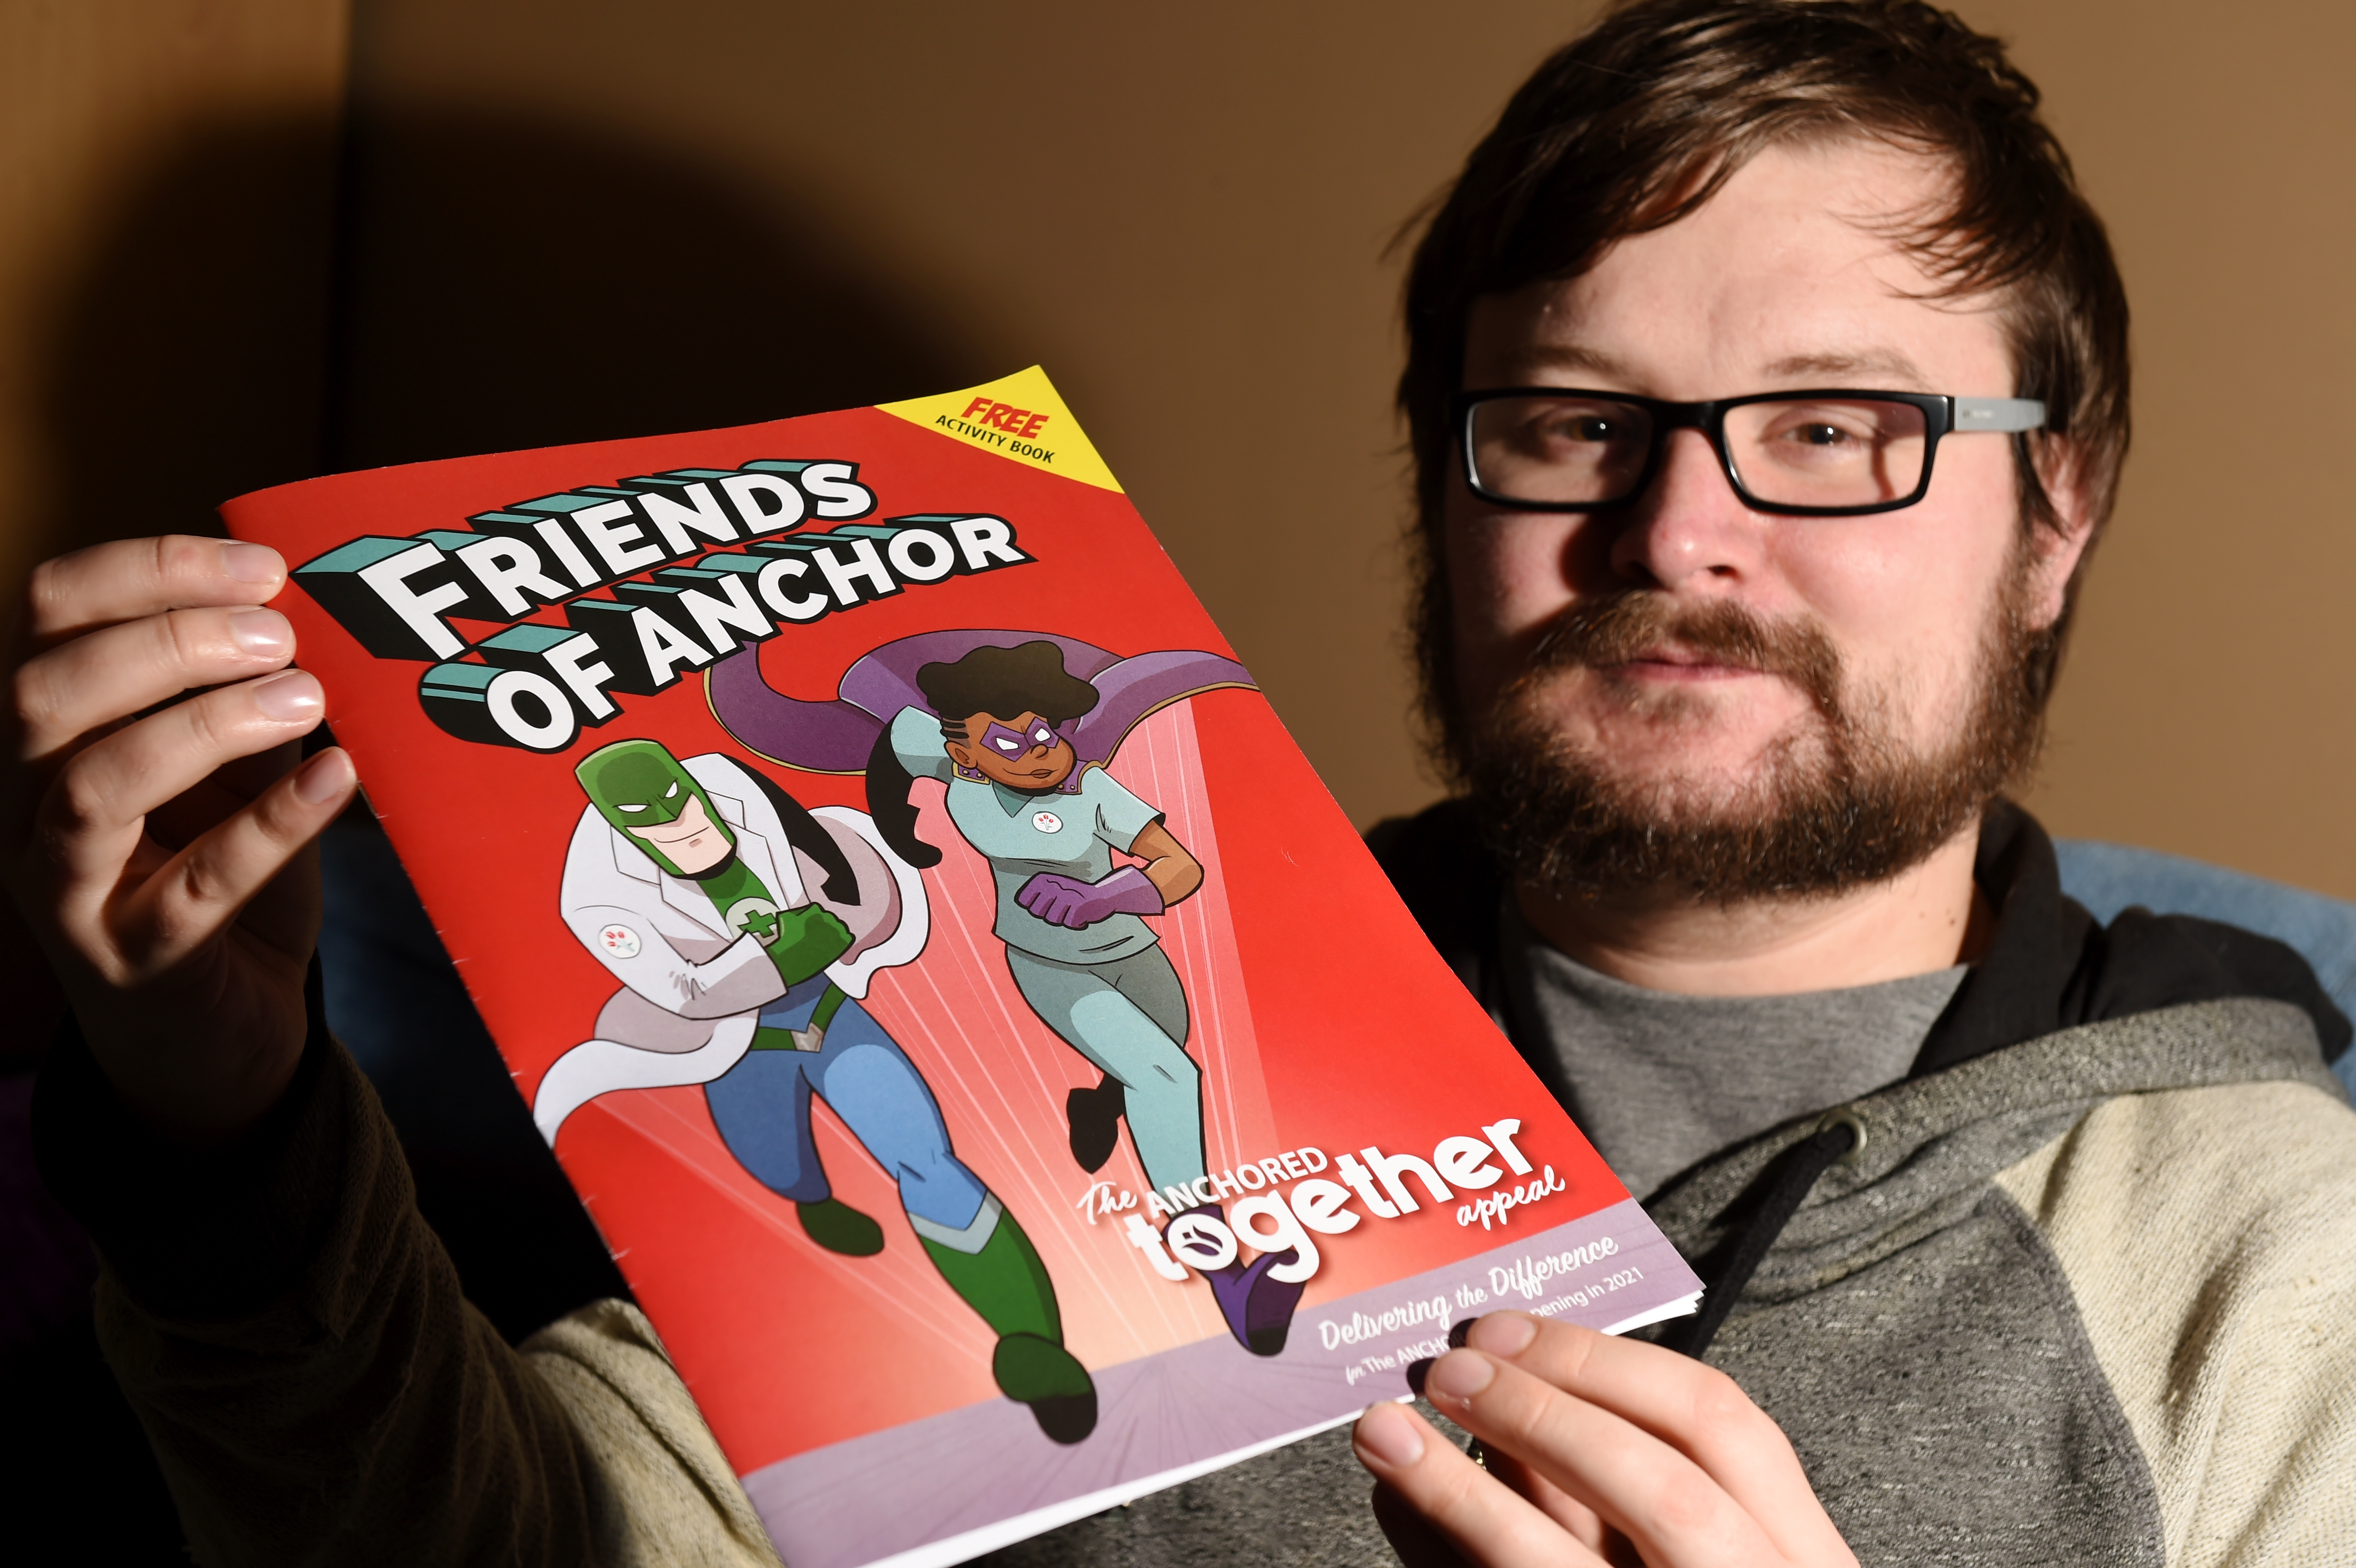 Craig Munro is a comic book artist who helped create a comic for Friends of Anchor's Anchored Together campaign (Picture by Kenny Elrick)